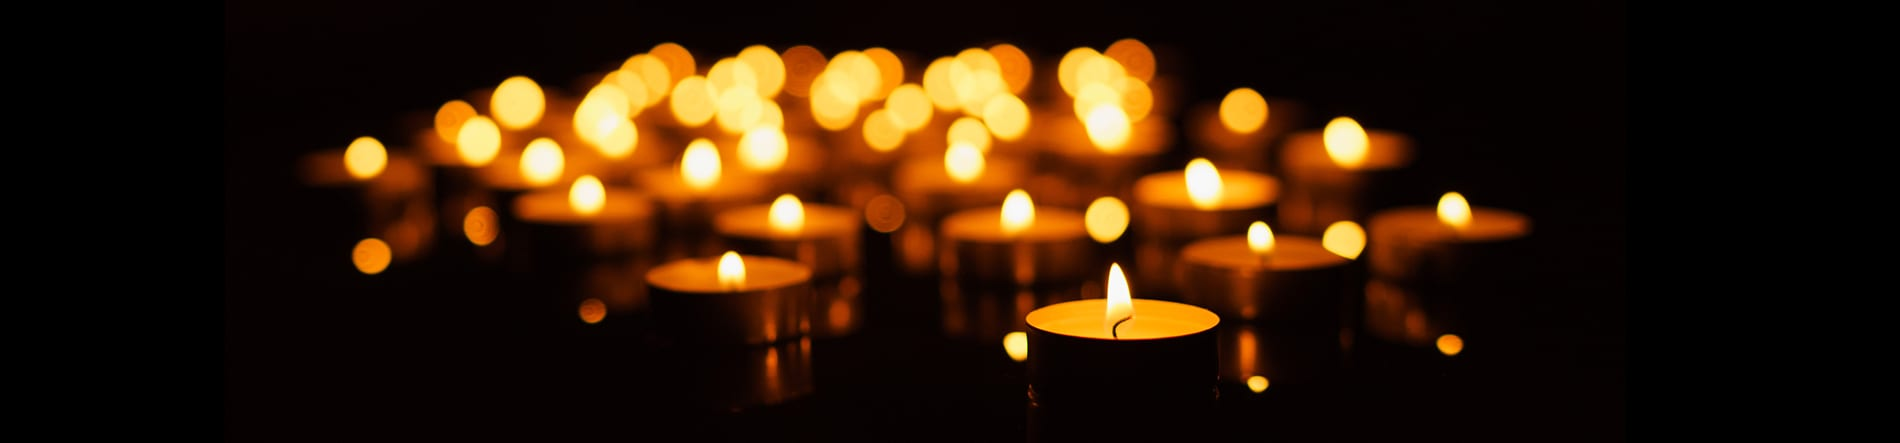 Pet Remembrance in Altadena: Tealight Candles Burning in the Dark